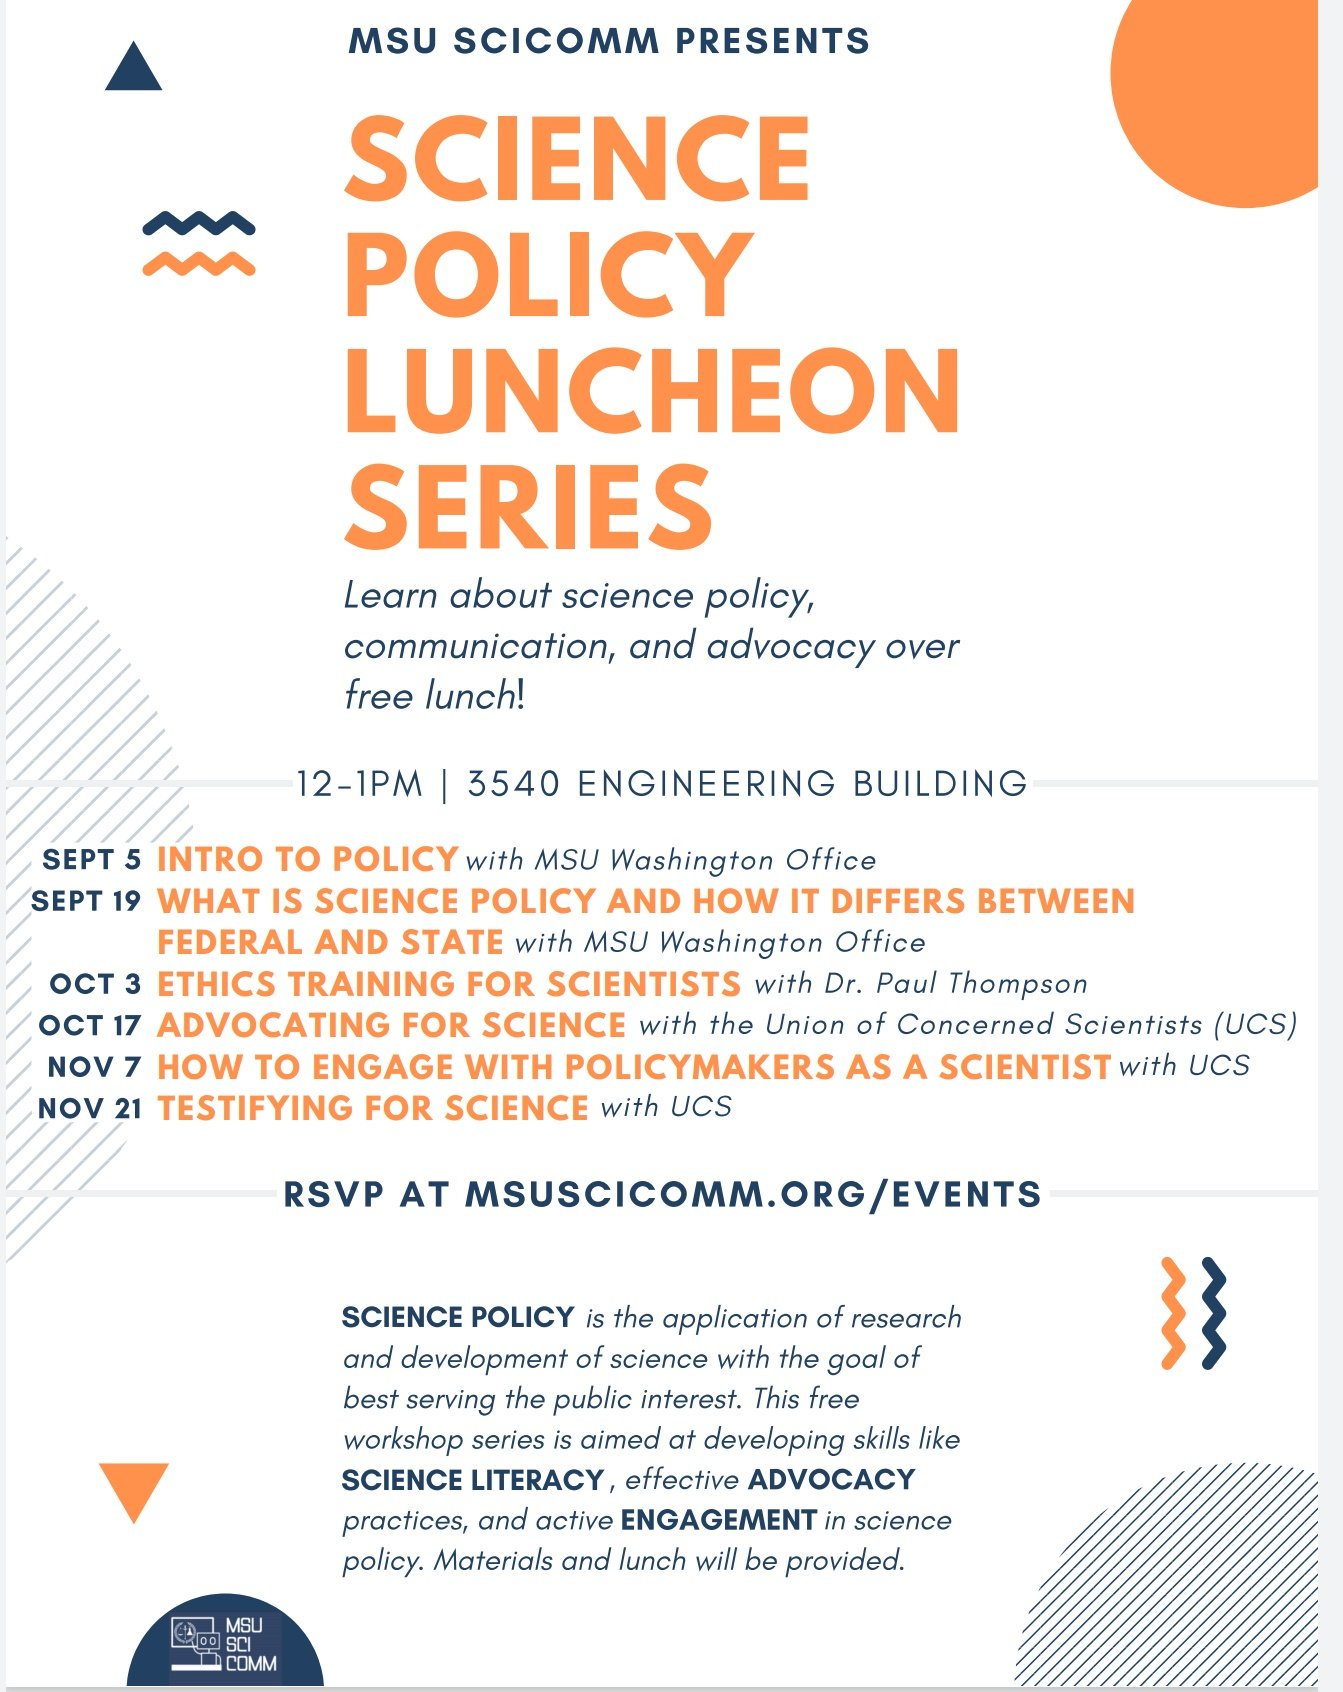 MSU SciComm Science Policy Luncheon Series Flyer